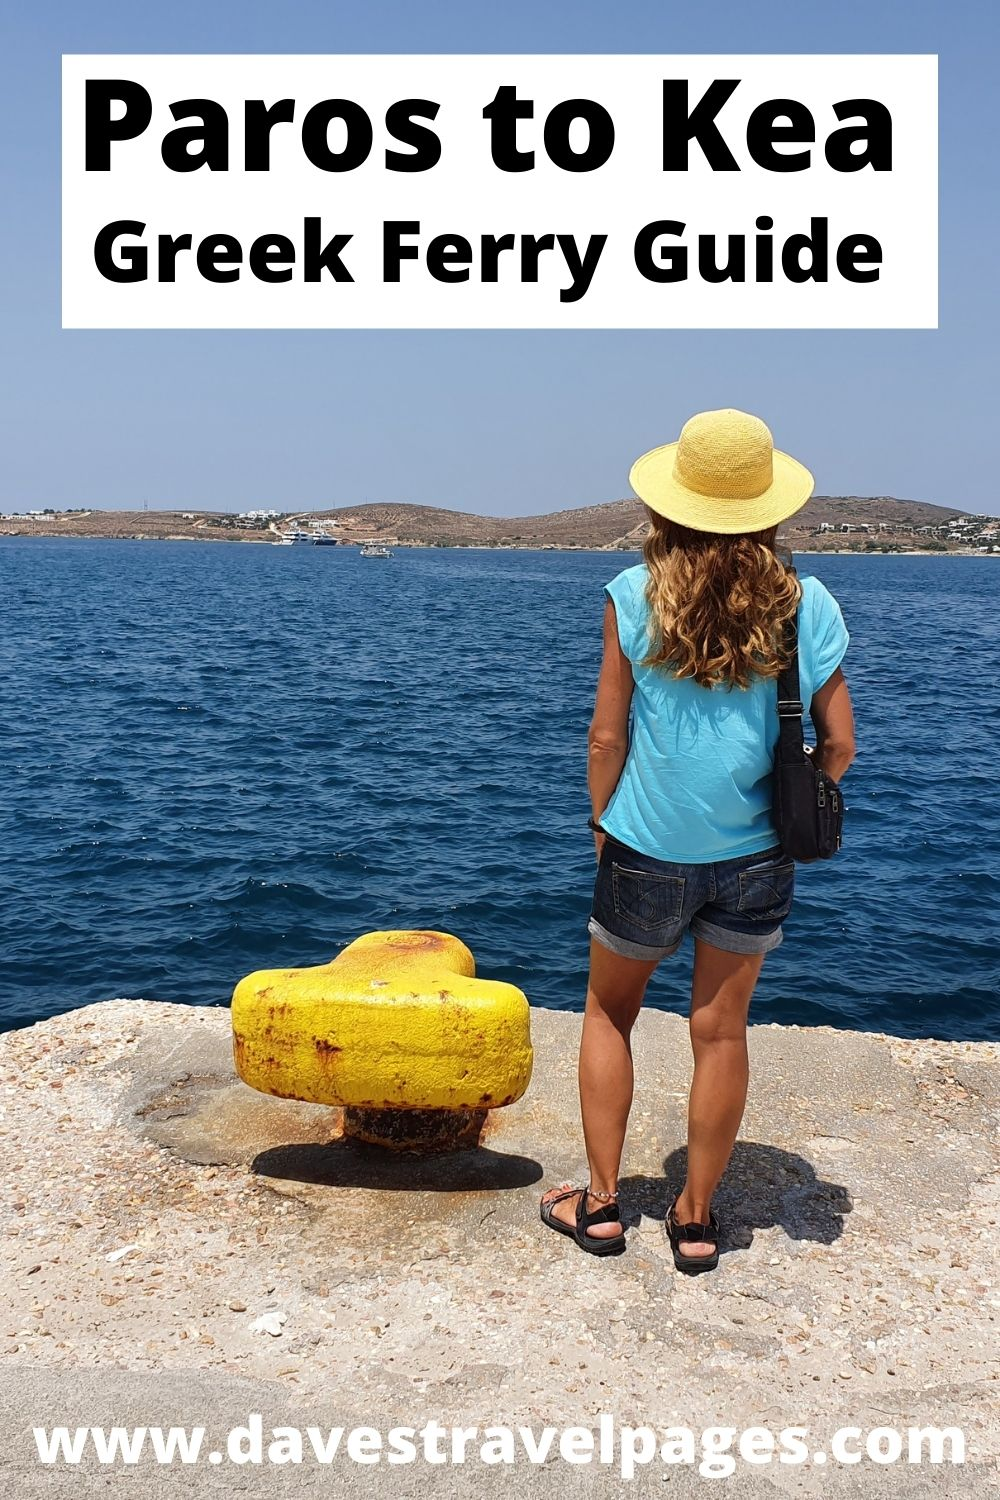 The best way to get from Paros to Kea in Greece